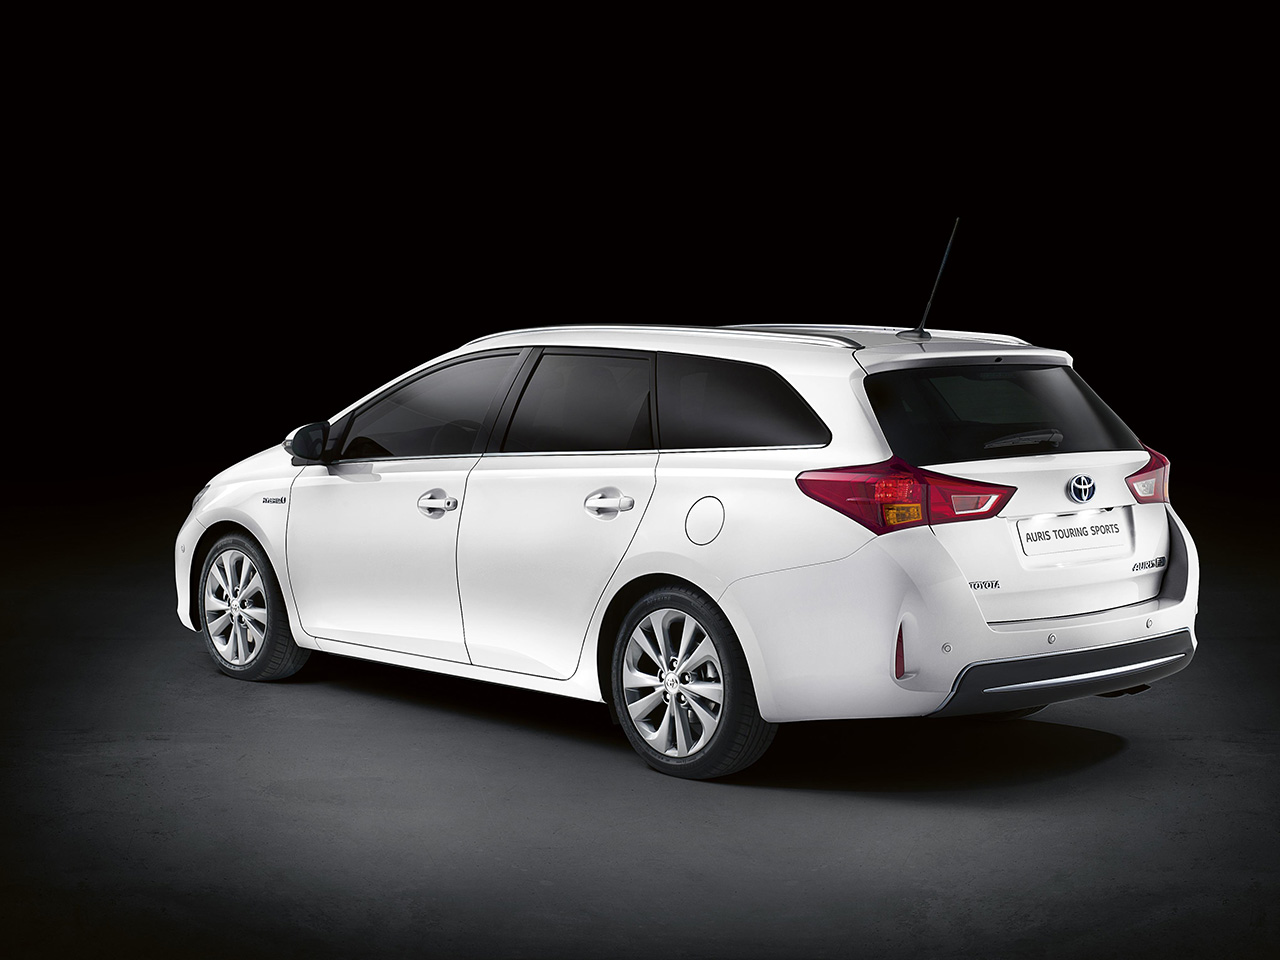 nuevo toyota auris touring sports el auris crece. Black Bedroom Furniture Sets. Home Design Ideas